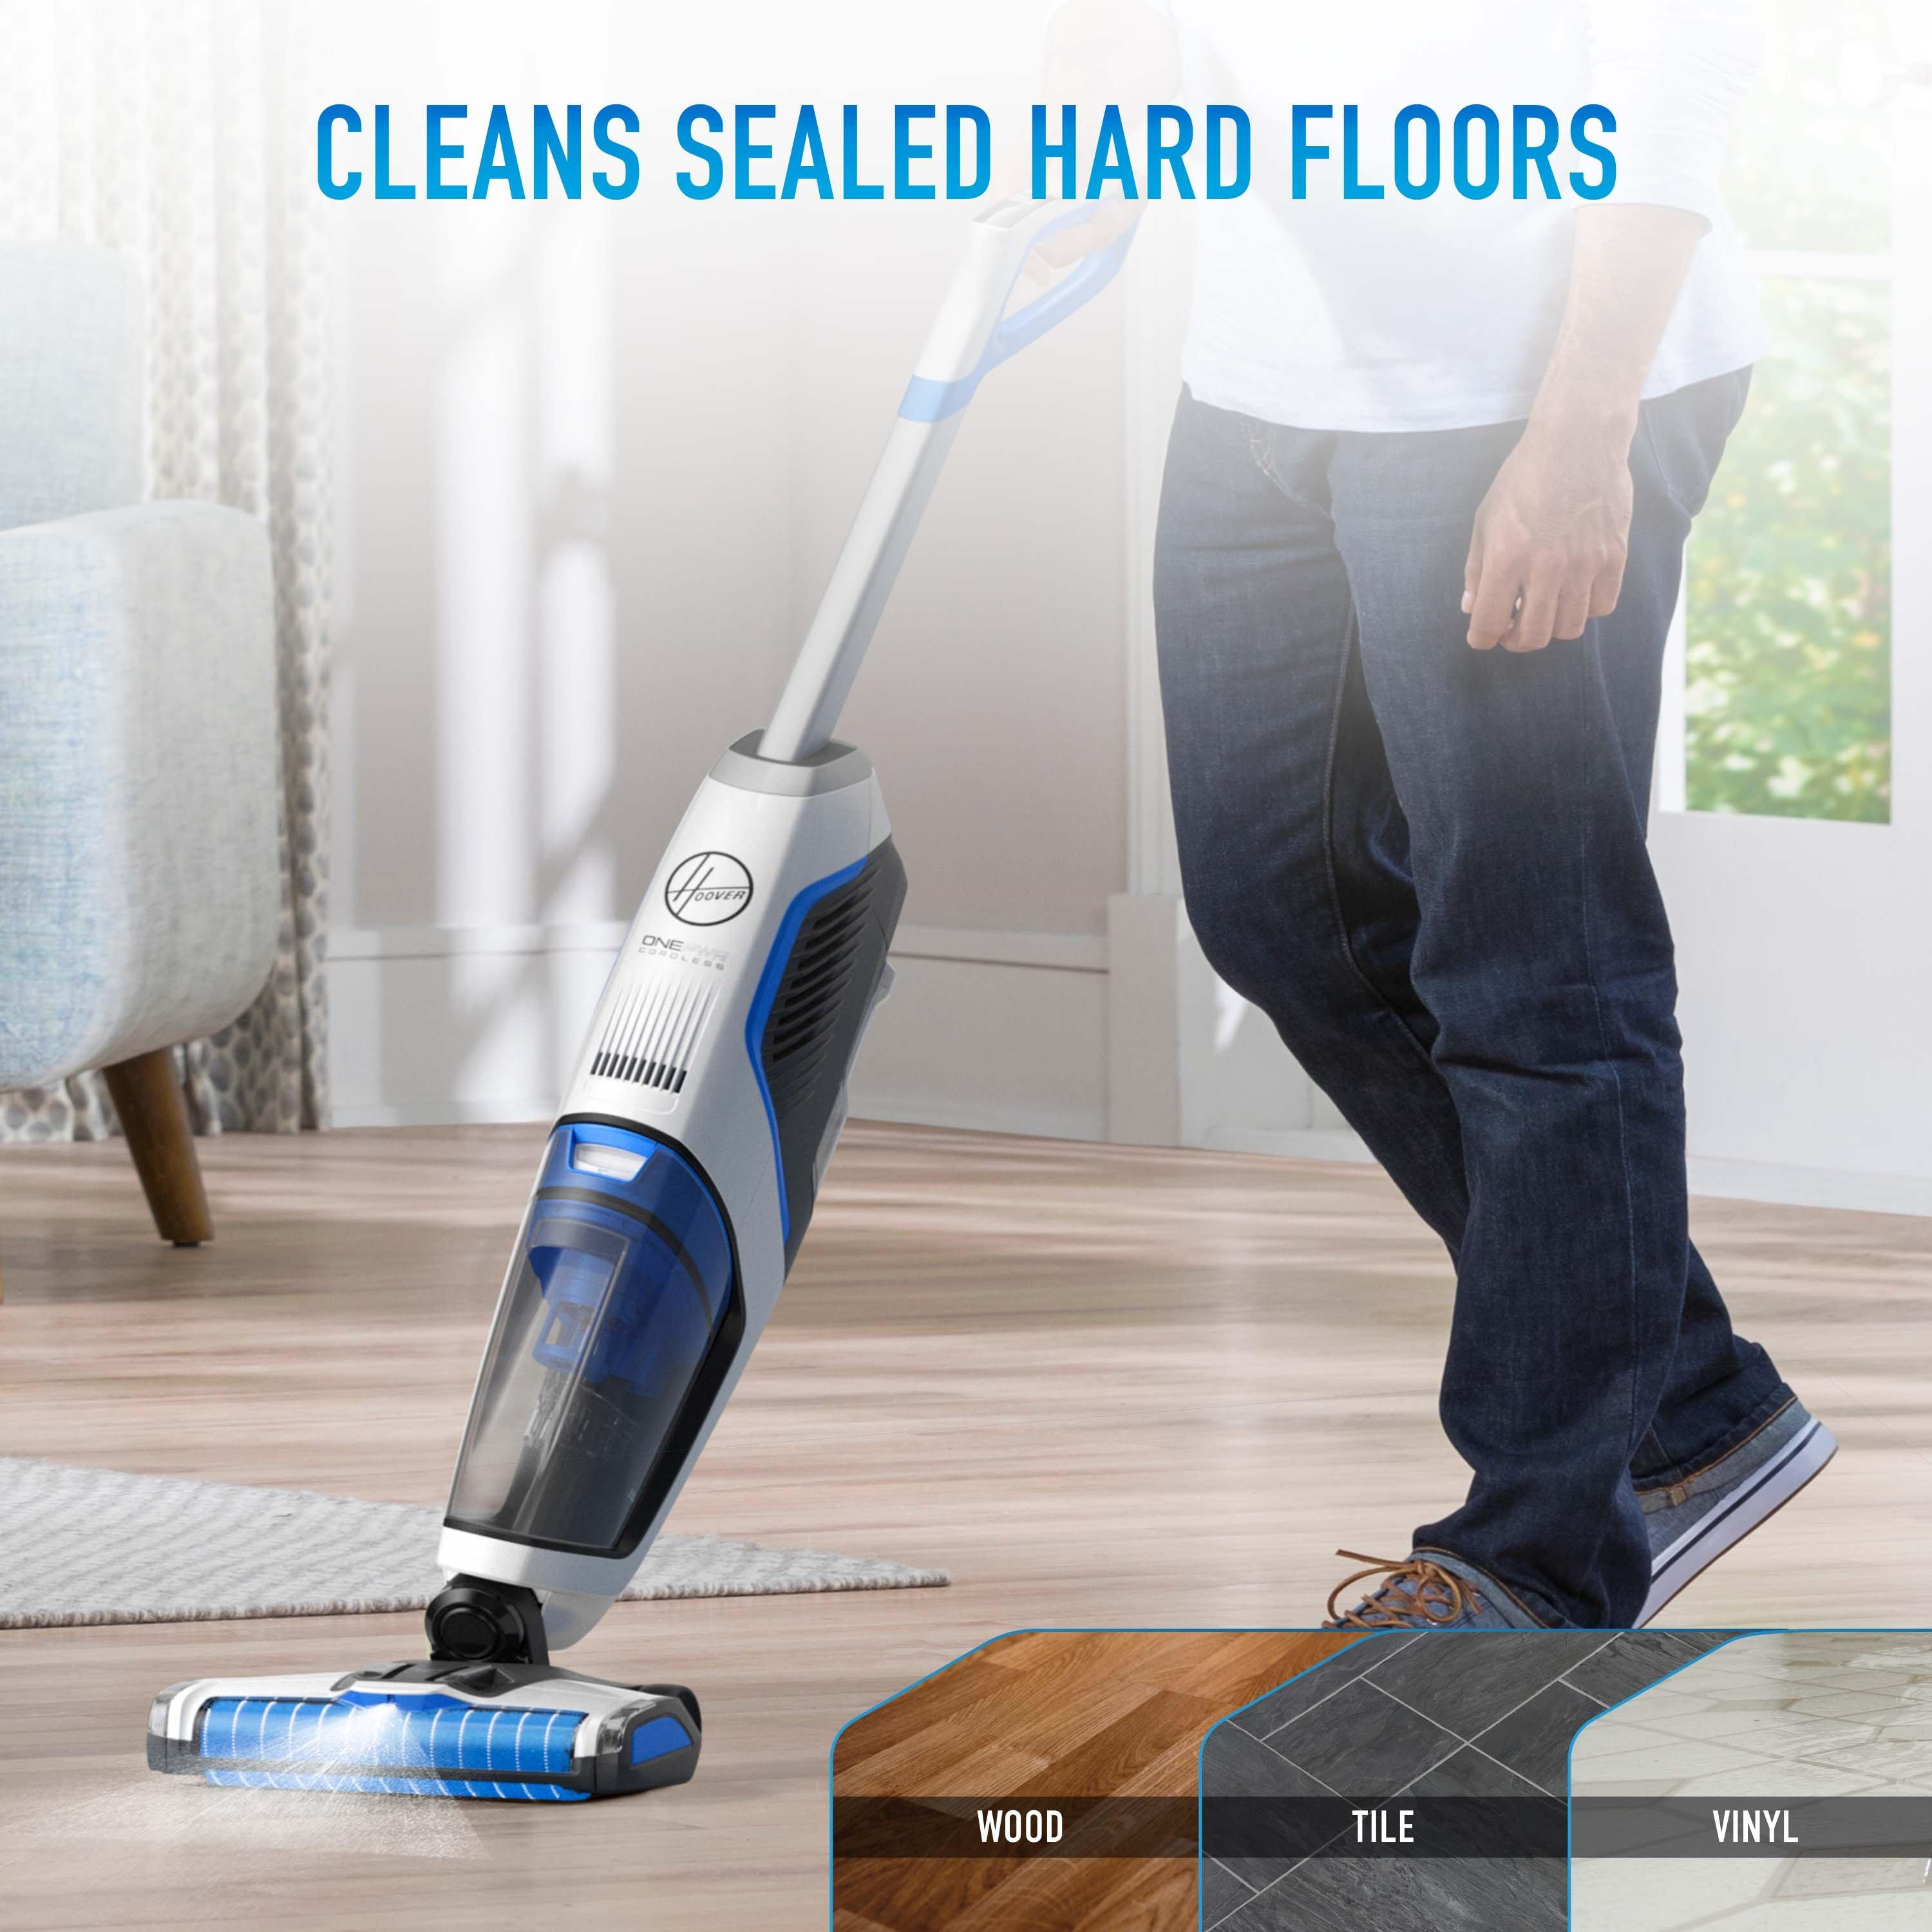 Hoover Onepwr Floormate Jet Cordless Hard Floor Cleaner Kit Ebay